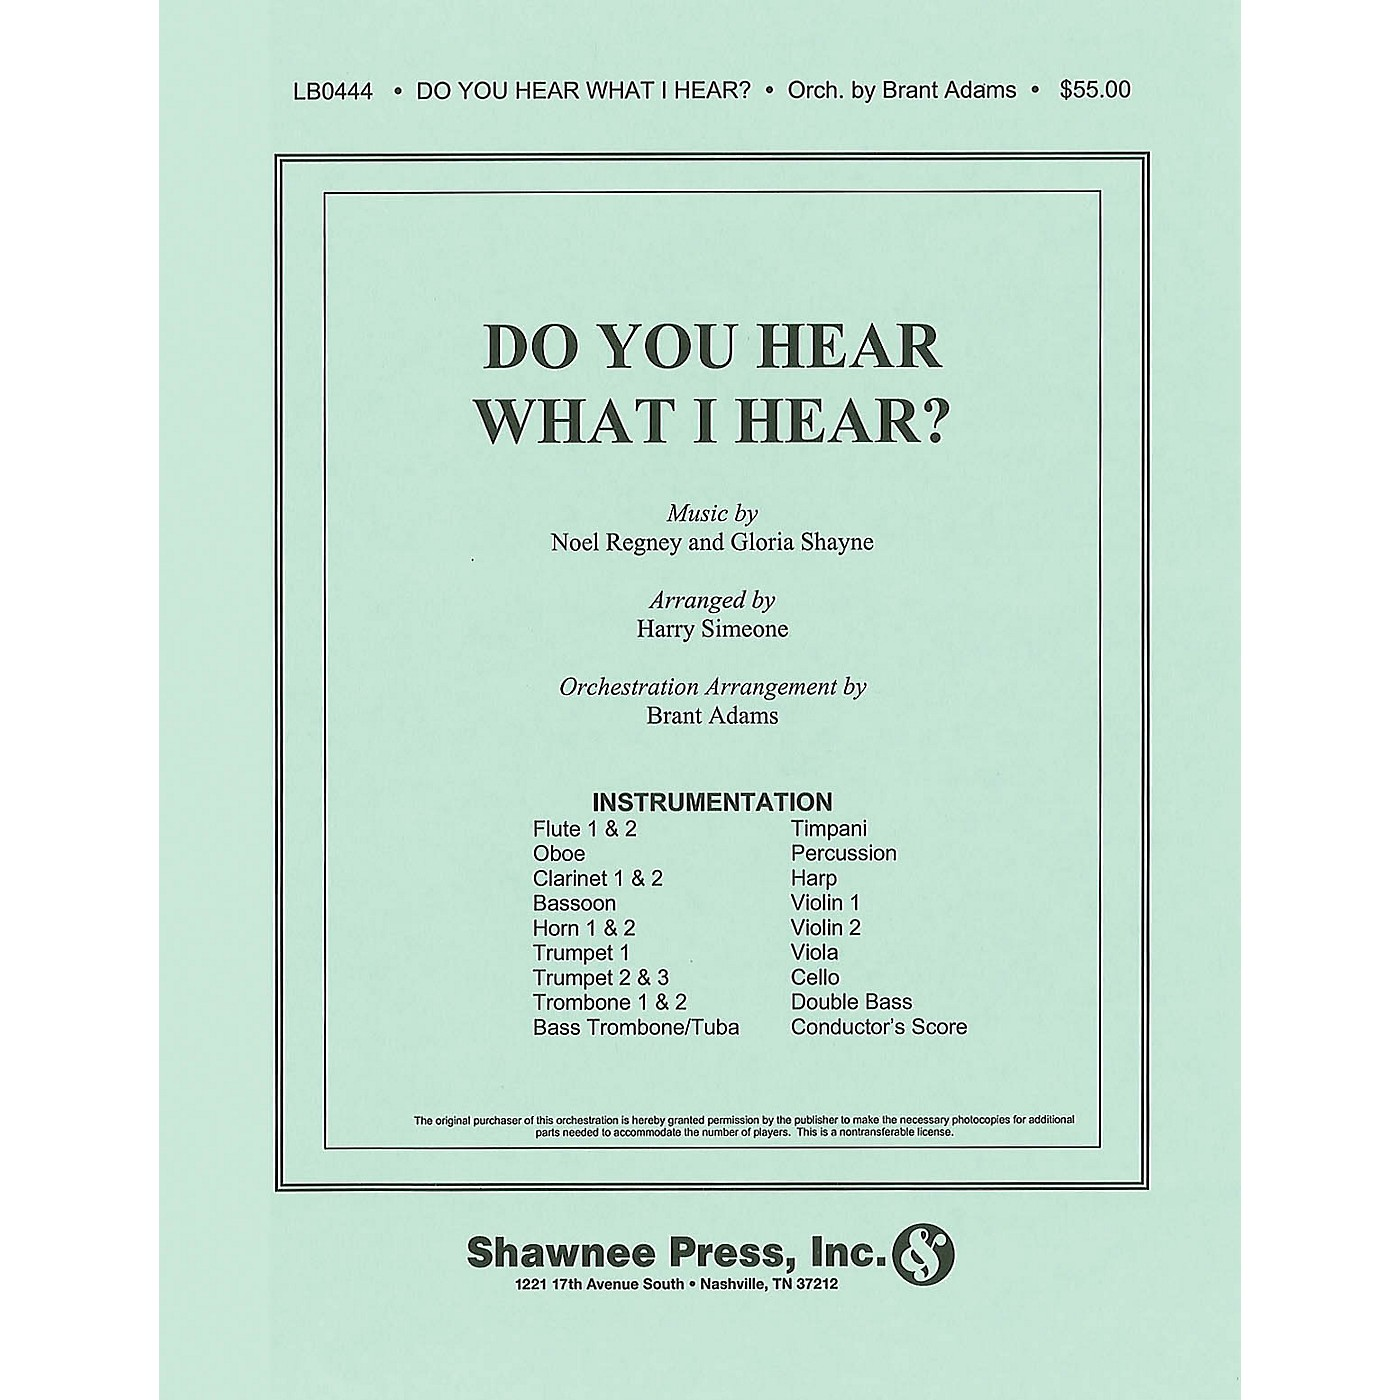 Shawnee Press Do You Hear What I Hear? (Orchestration) Score & Parts arranged by Harry Simeone thumbnail